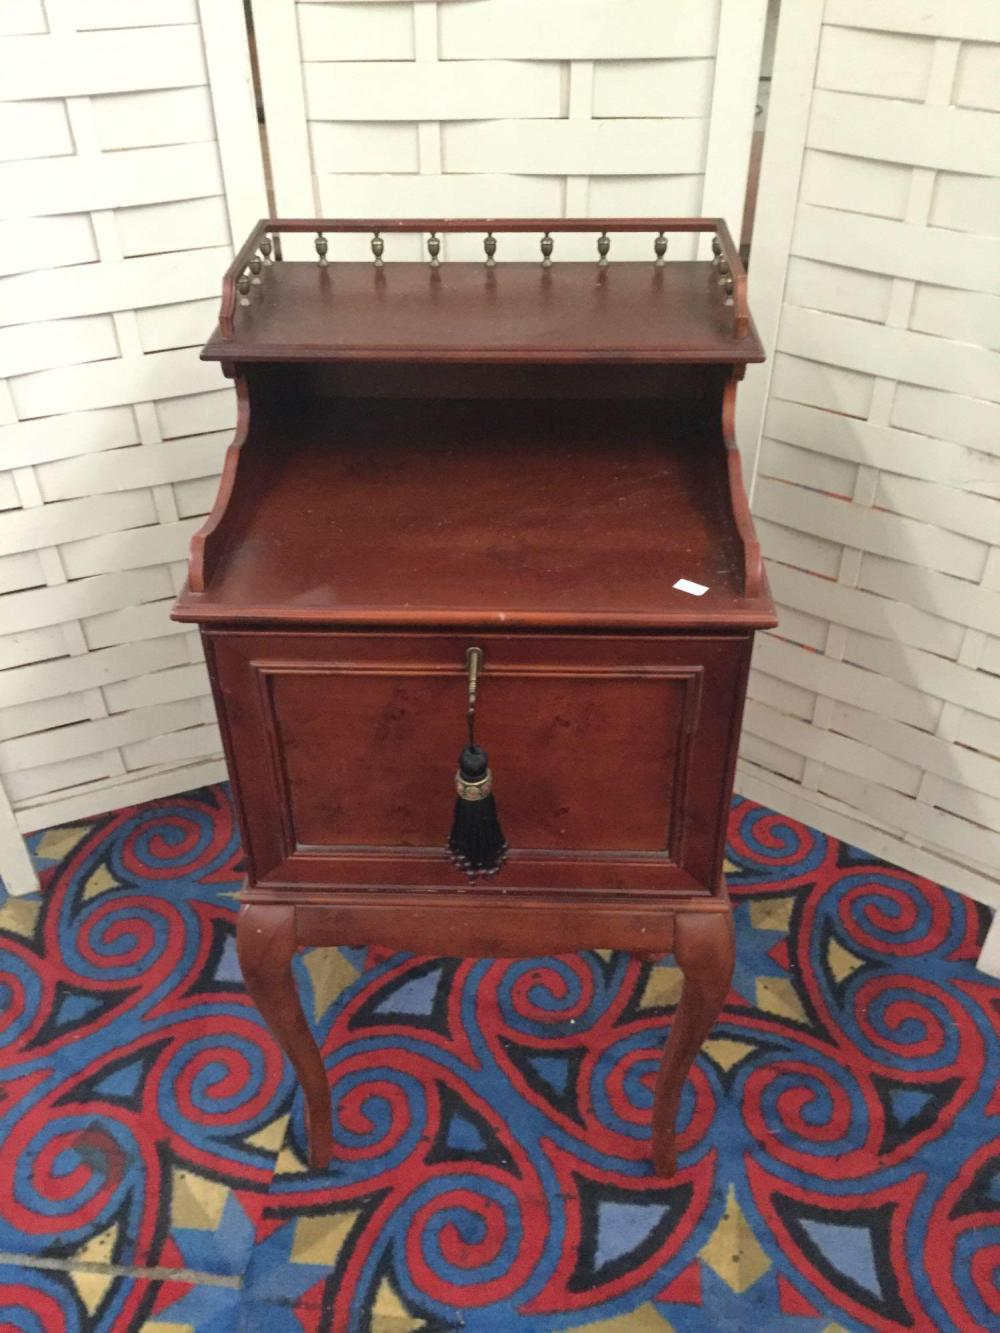 2003 Bombay furniture company locking side table cabinet